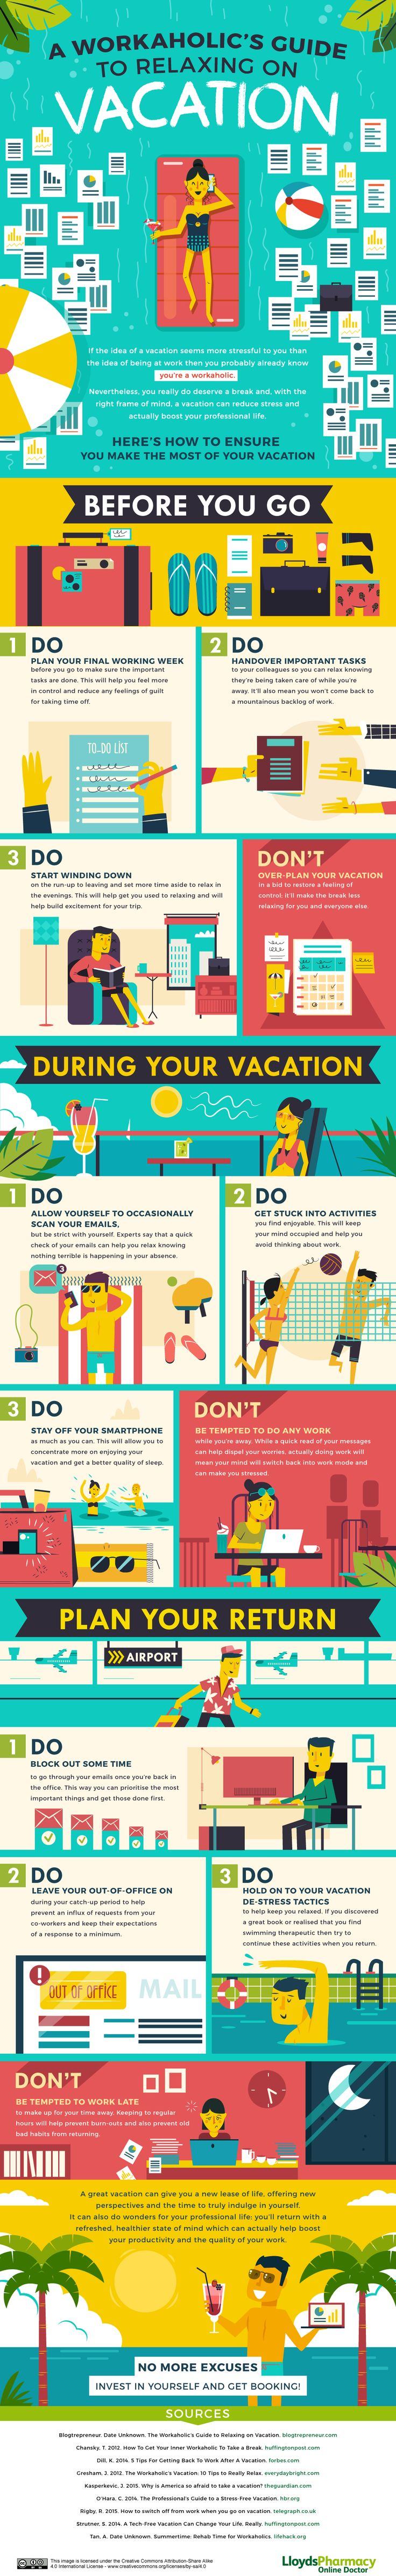 A workaholic's guide to relaxing on vacation